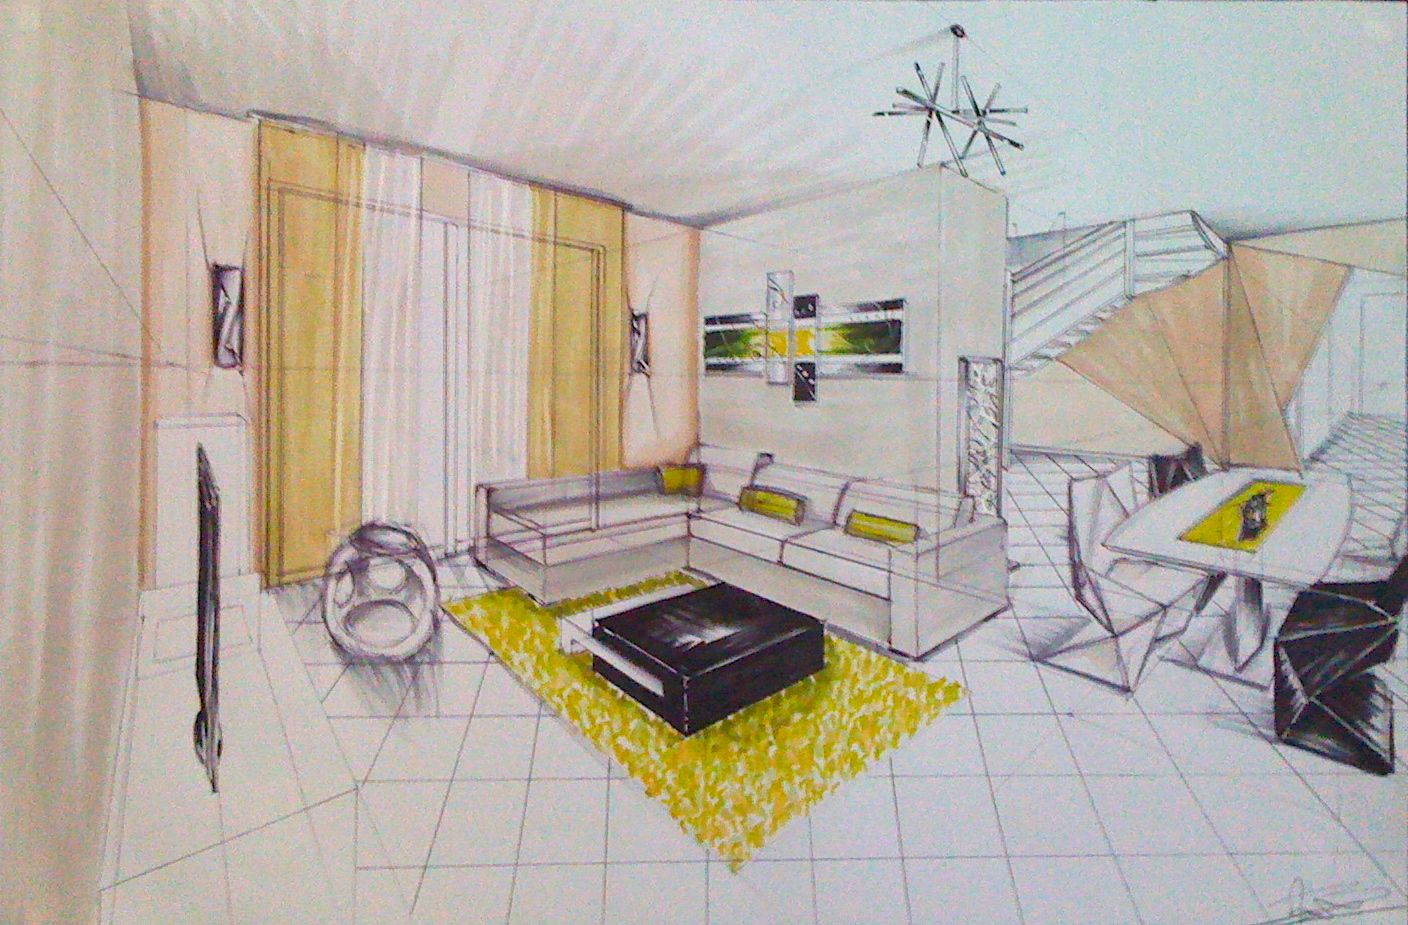 Dessiner l interieur d une maison en perspective ventana for Ventilation spa interieur